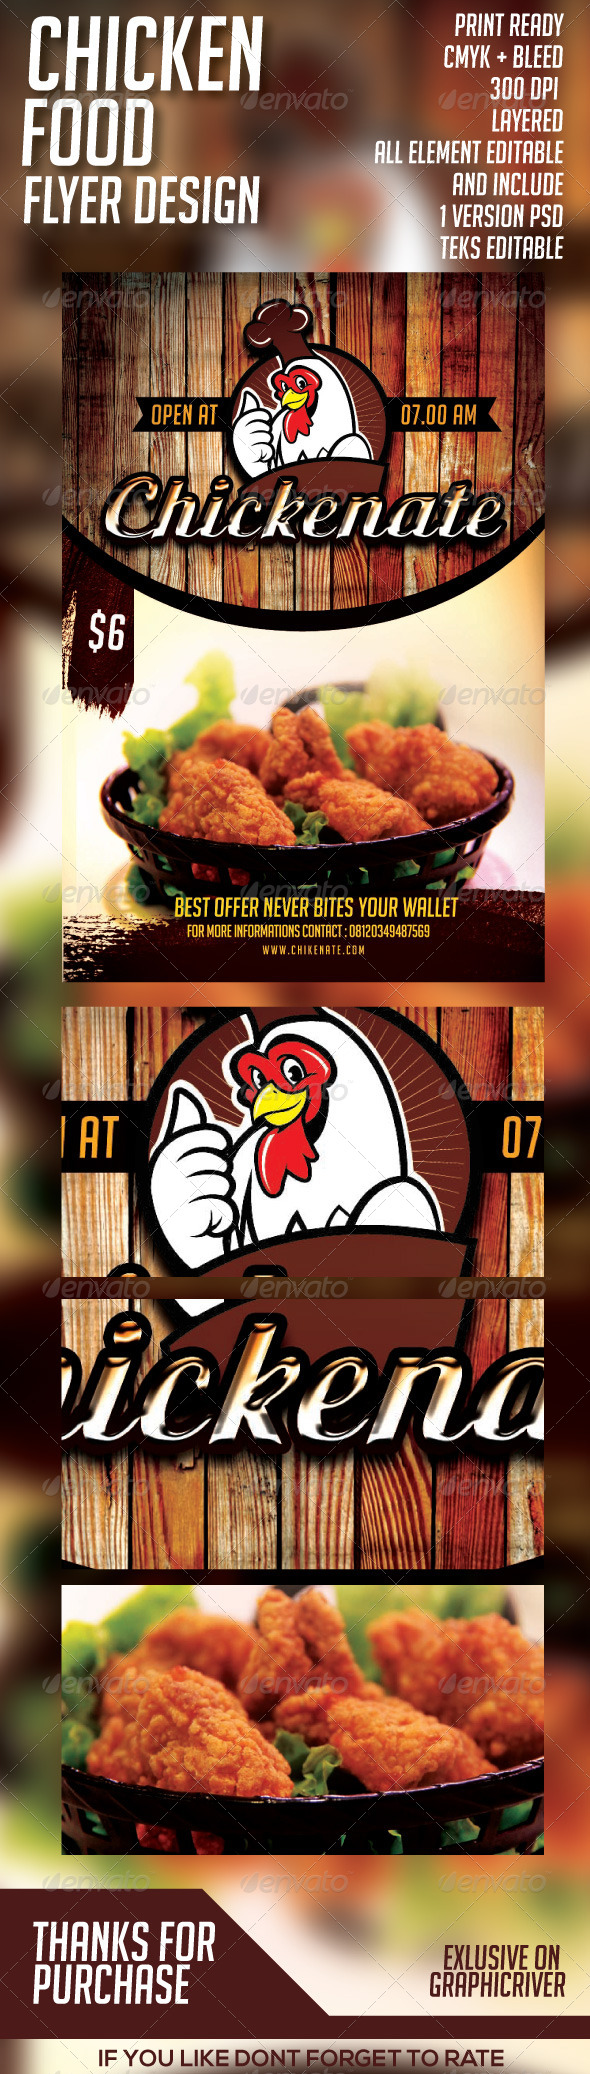 Chicken Food Flyer Template PSD by H_M | GraphicRiver